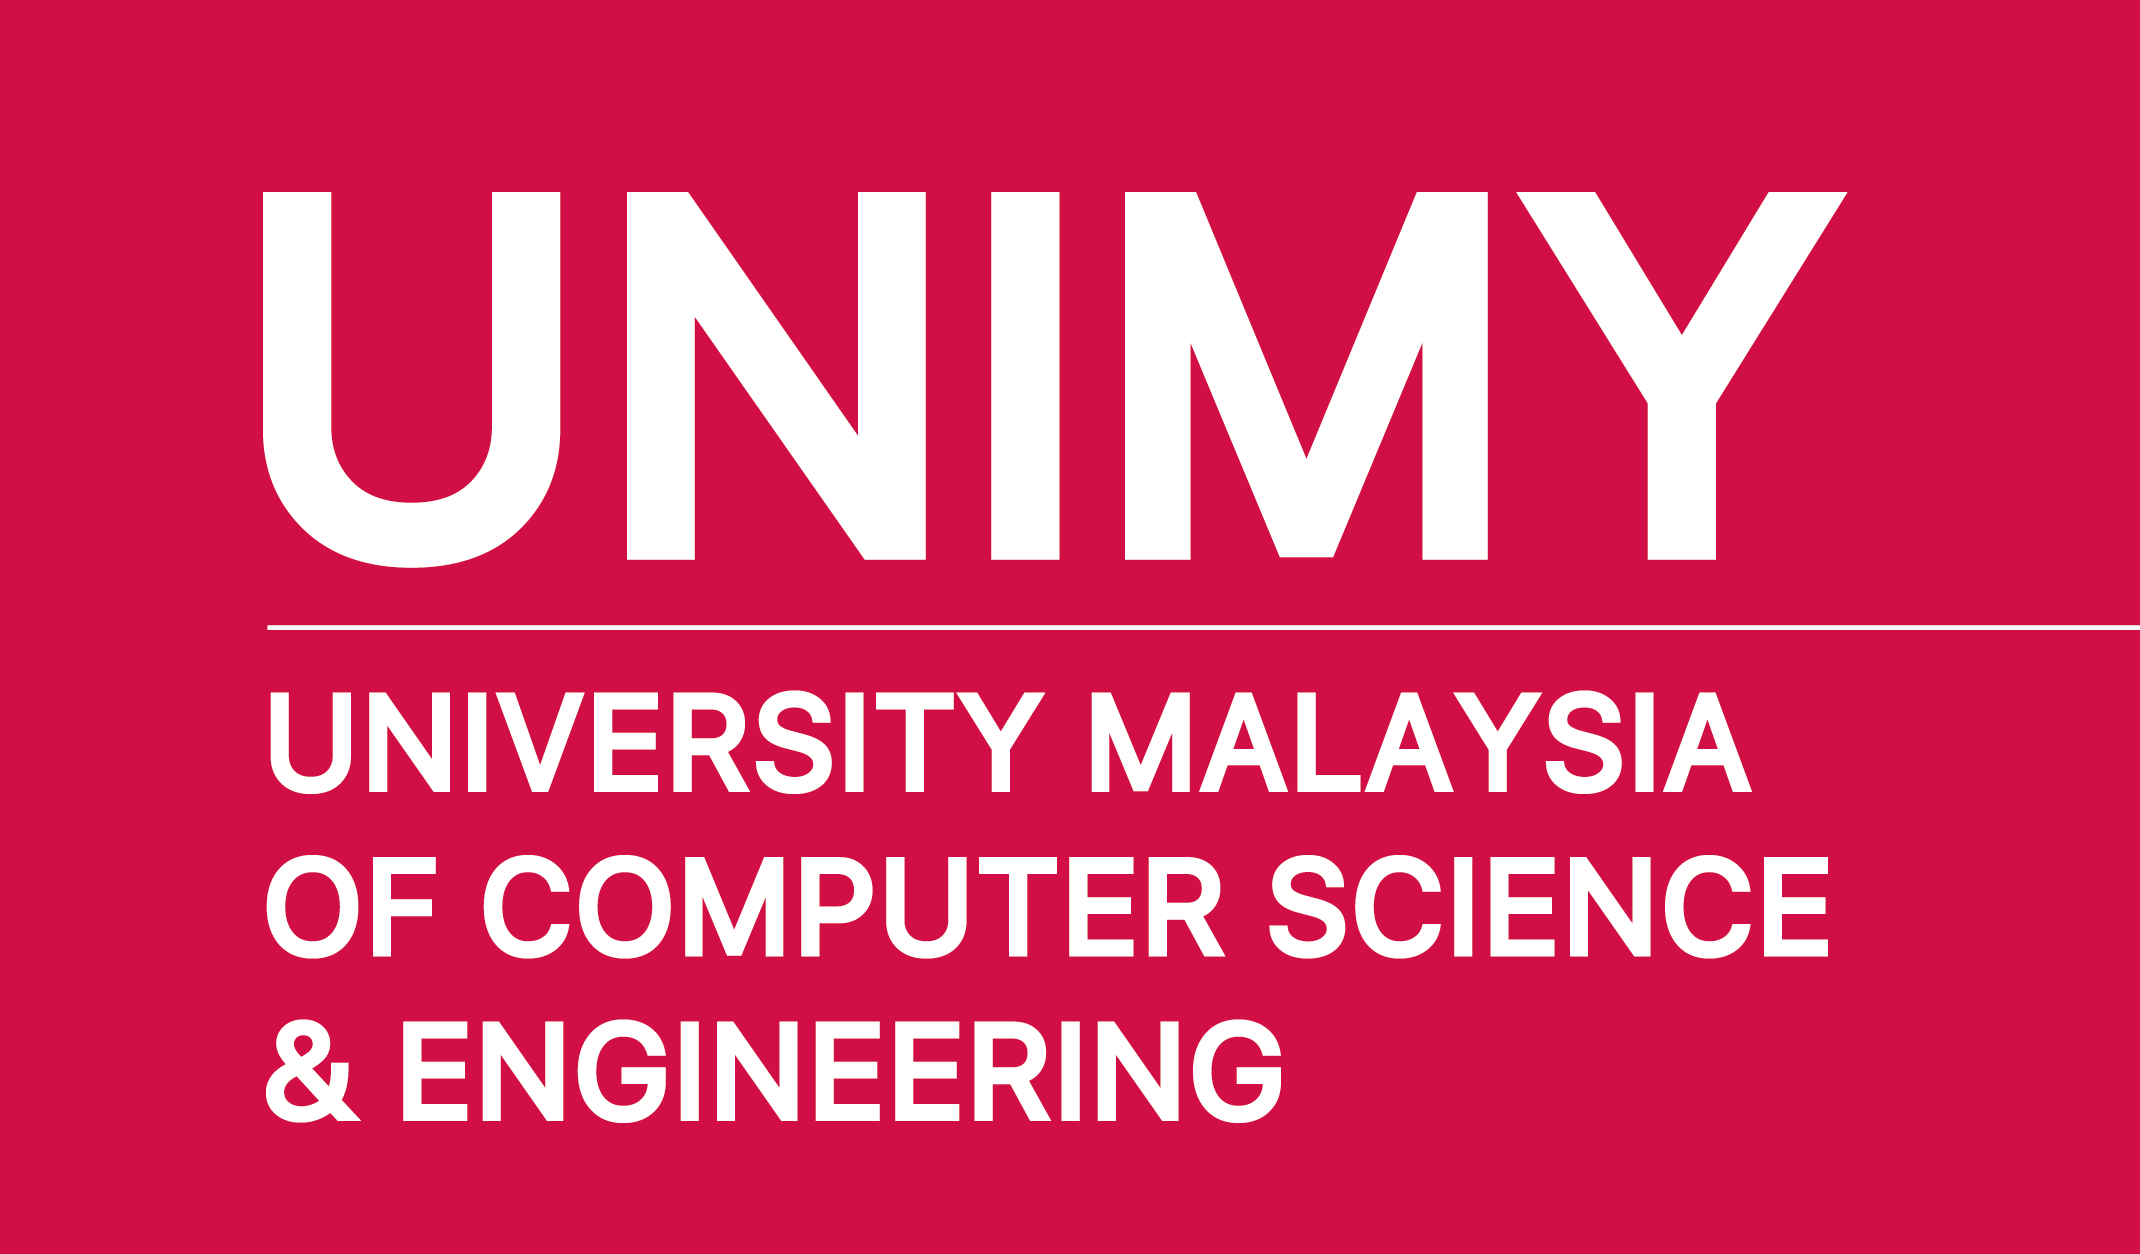 University Malaysia of Computer Science and Engineering